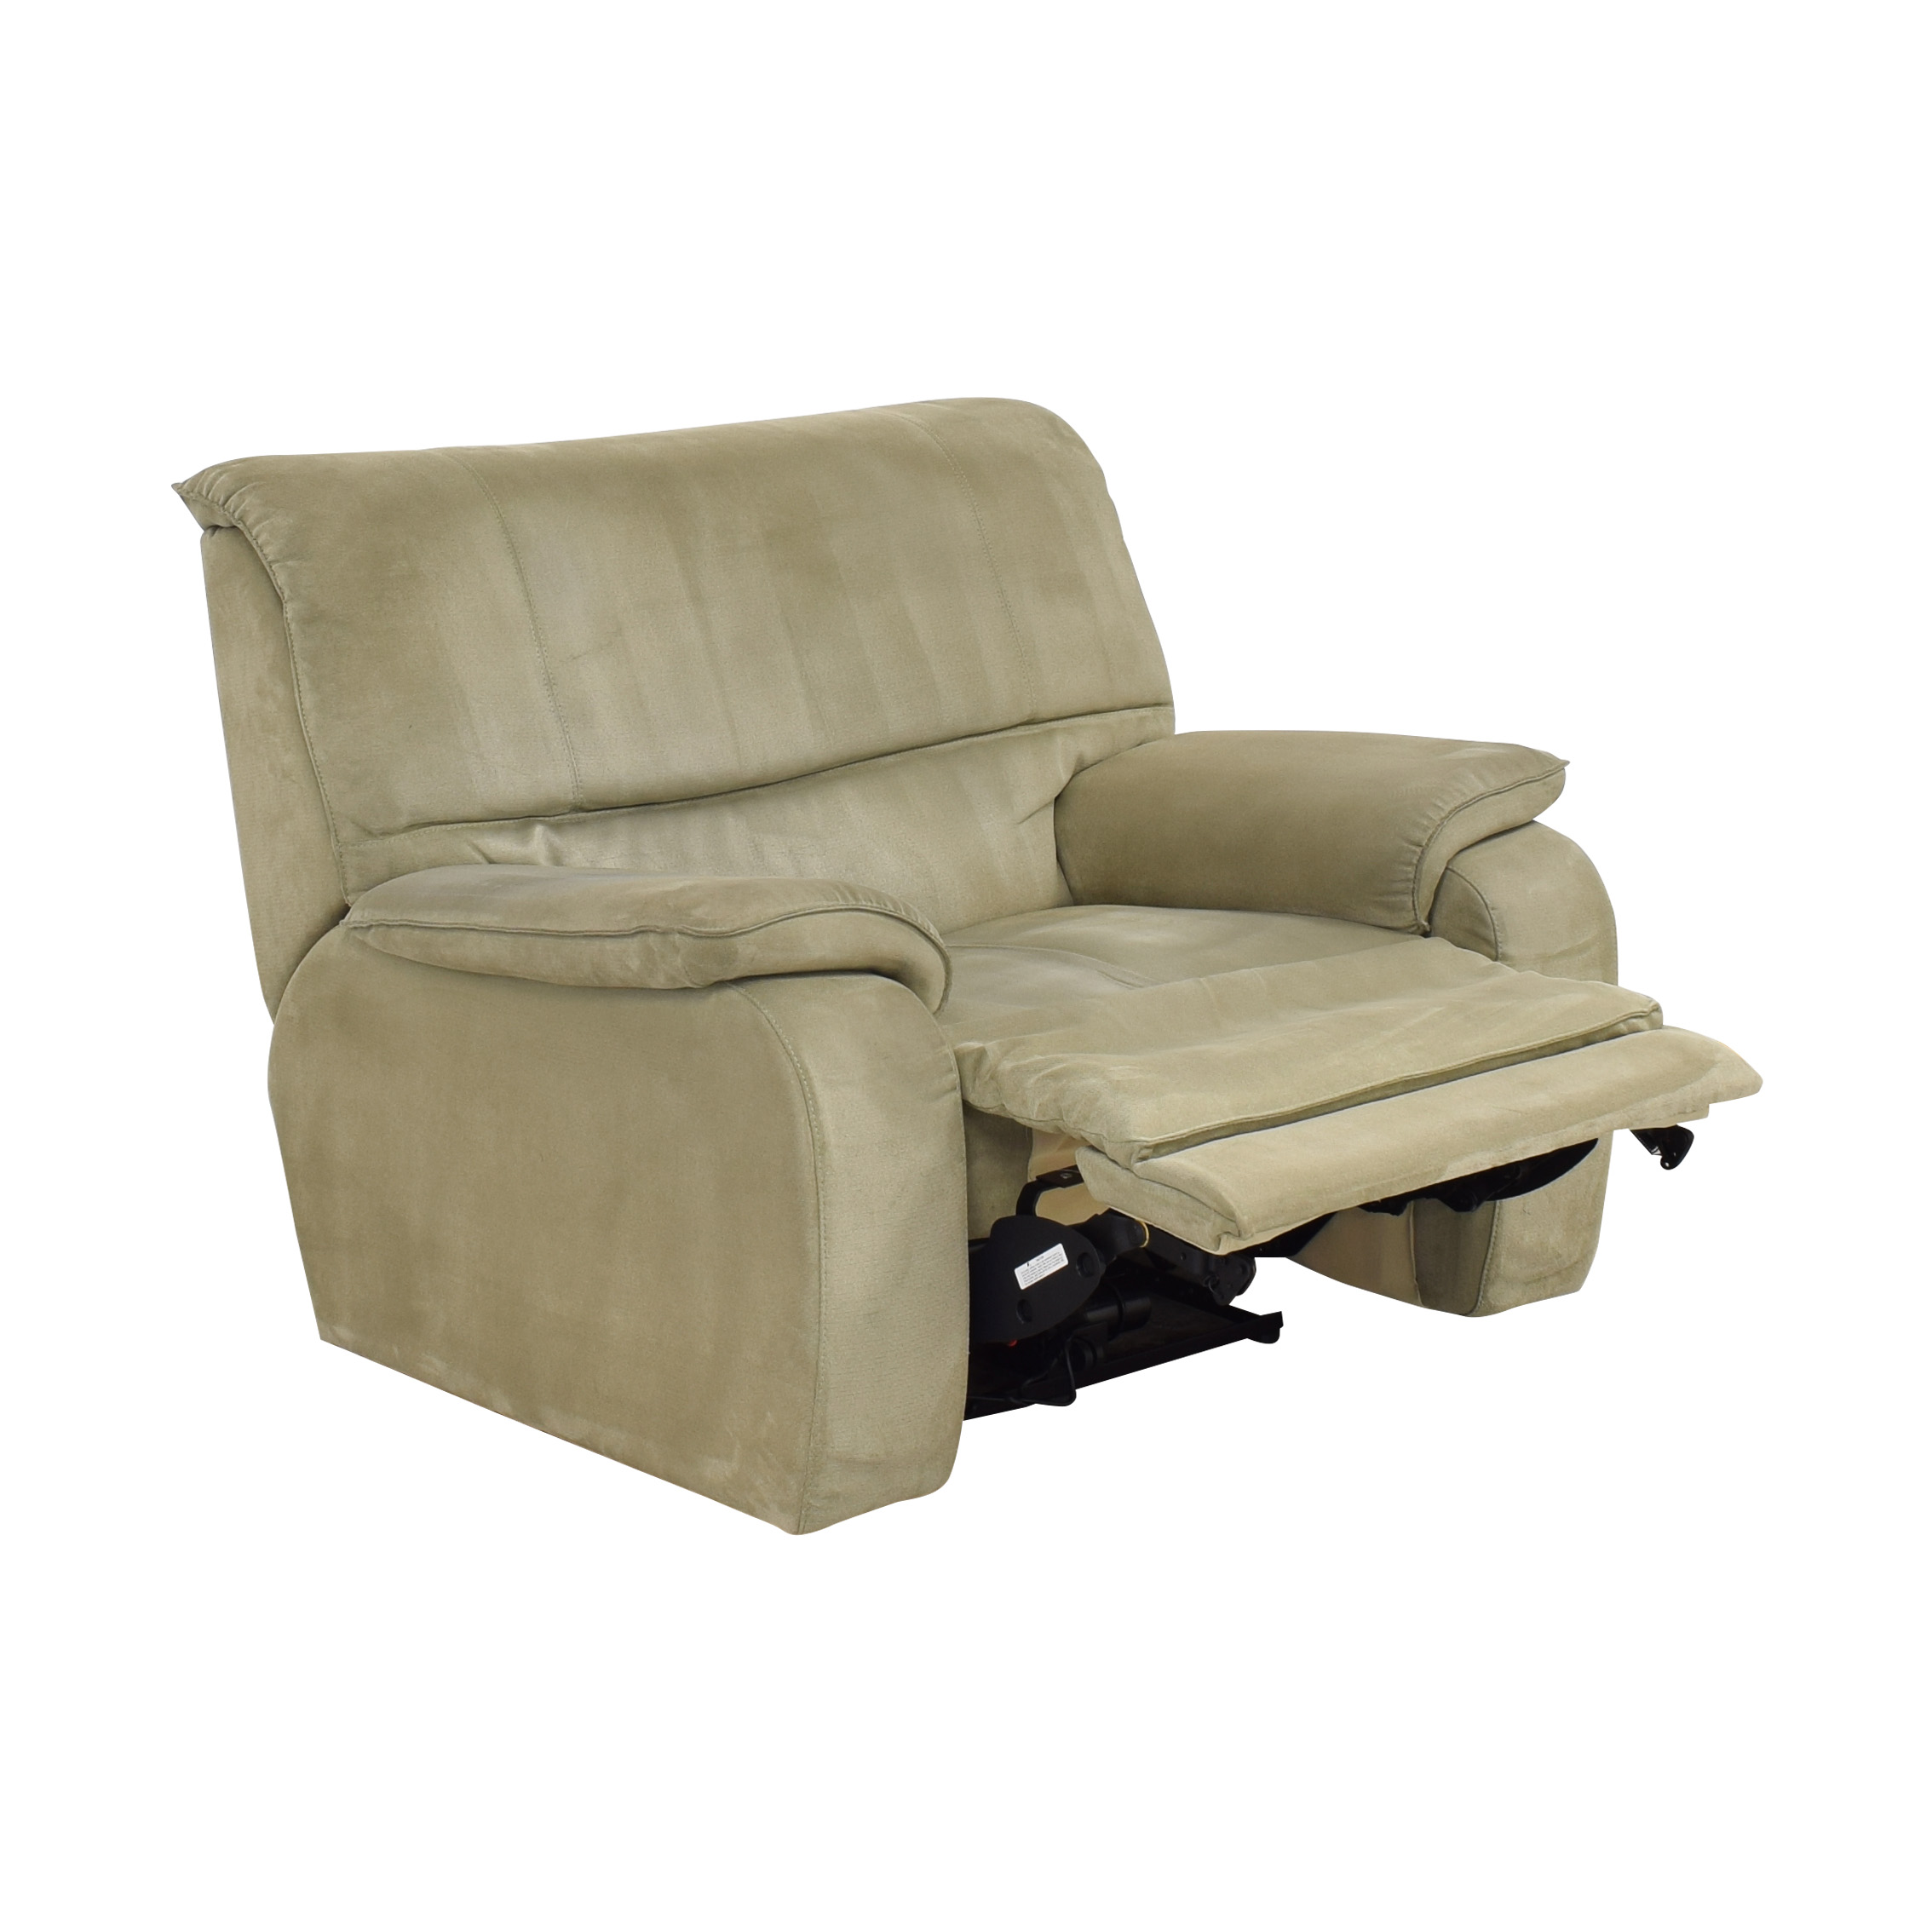 Macy's Macy's Oversized Recliner nj